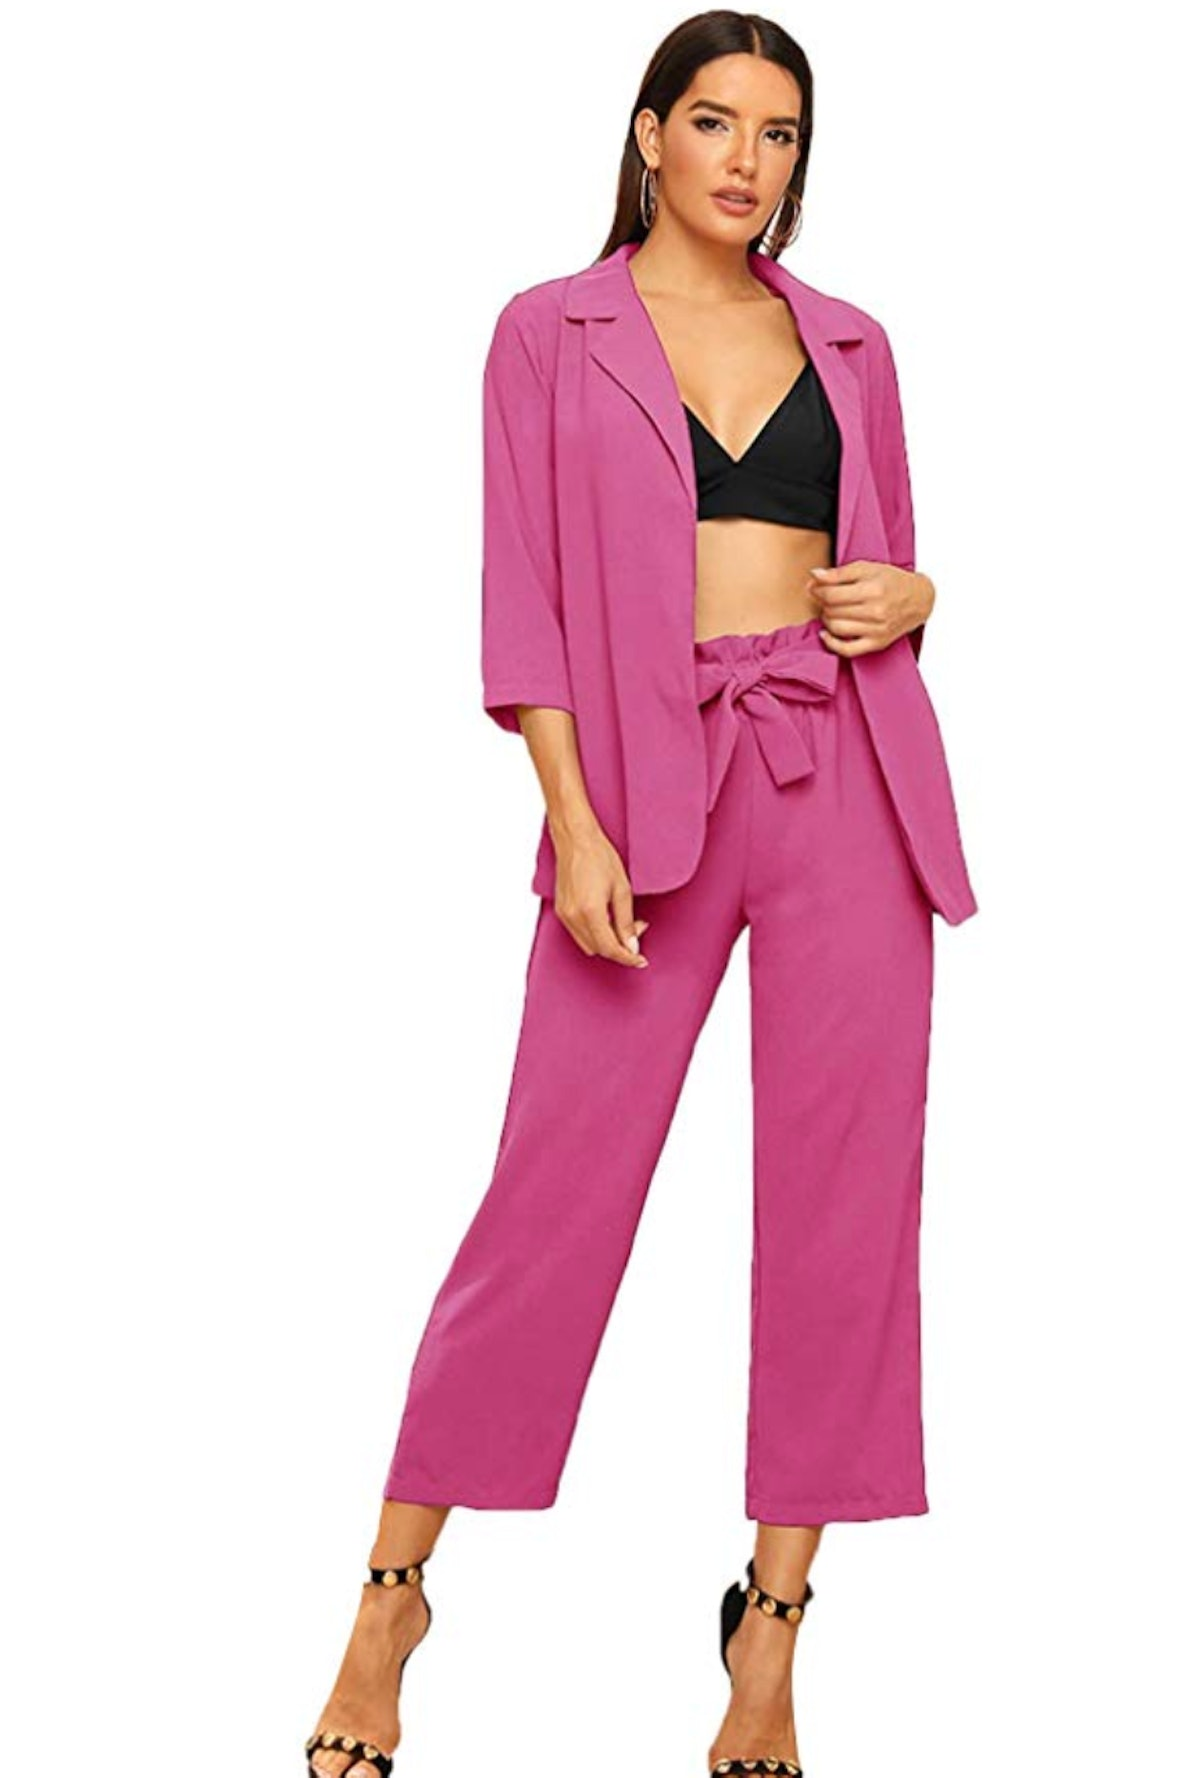 SheIn Women's 2 Piece Outfit Notched Neck 3/4 Sleeve Blazer and Wide Leg Belted Pants Set